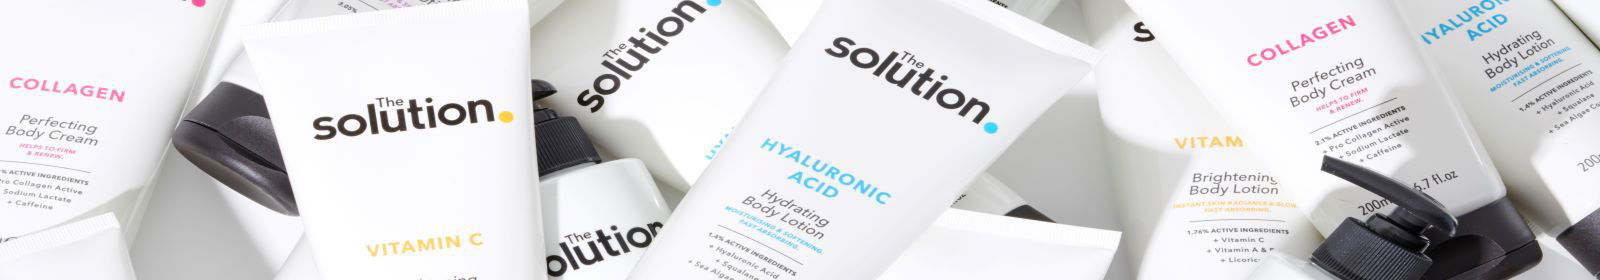 cosmetice/baie-si-corp the_solution